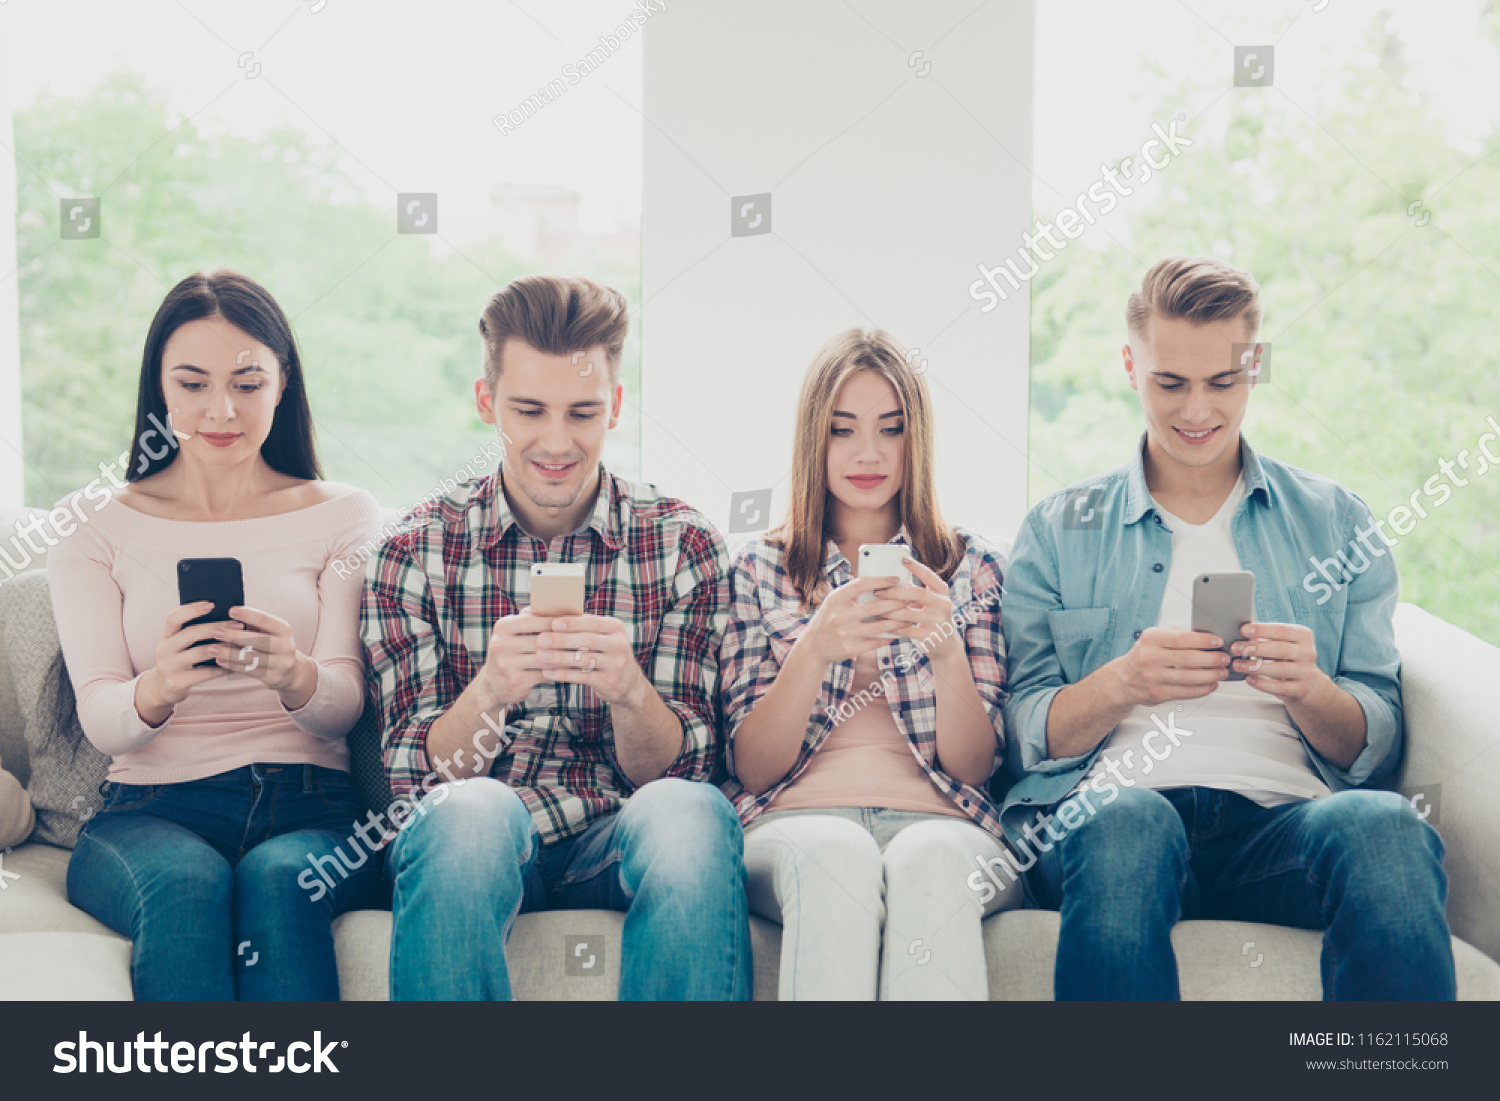 Four young people in jeans and shirts holding modern phones and smiling sitting at home on a white sofa in a bright room #1162115068